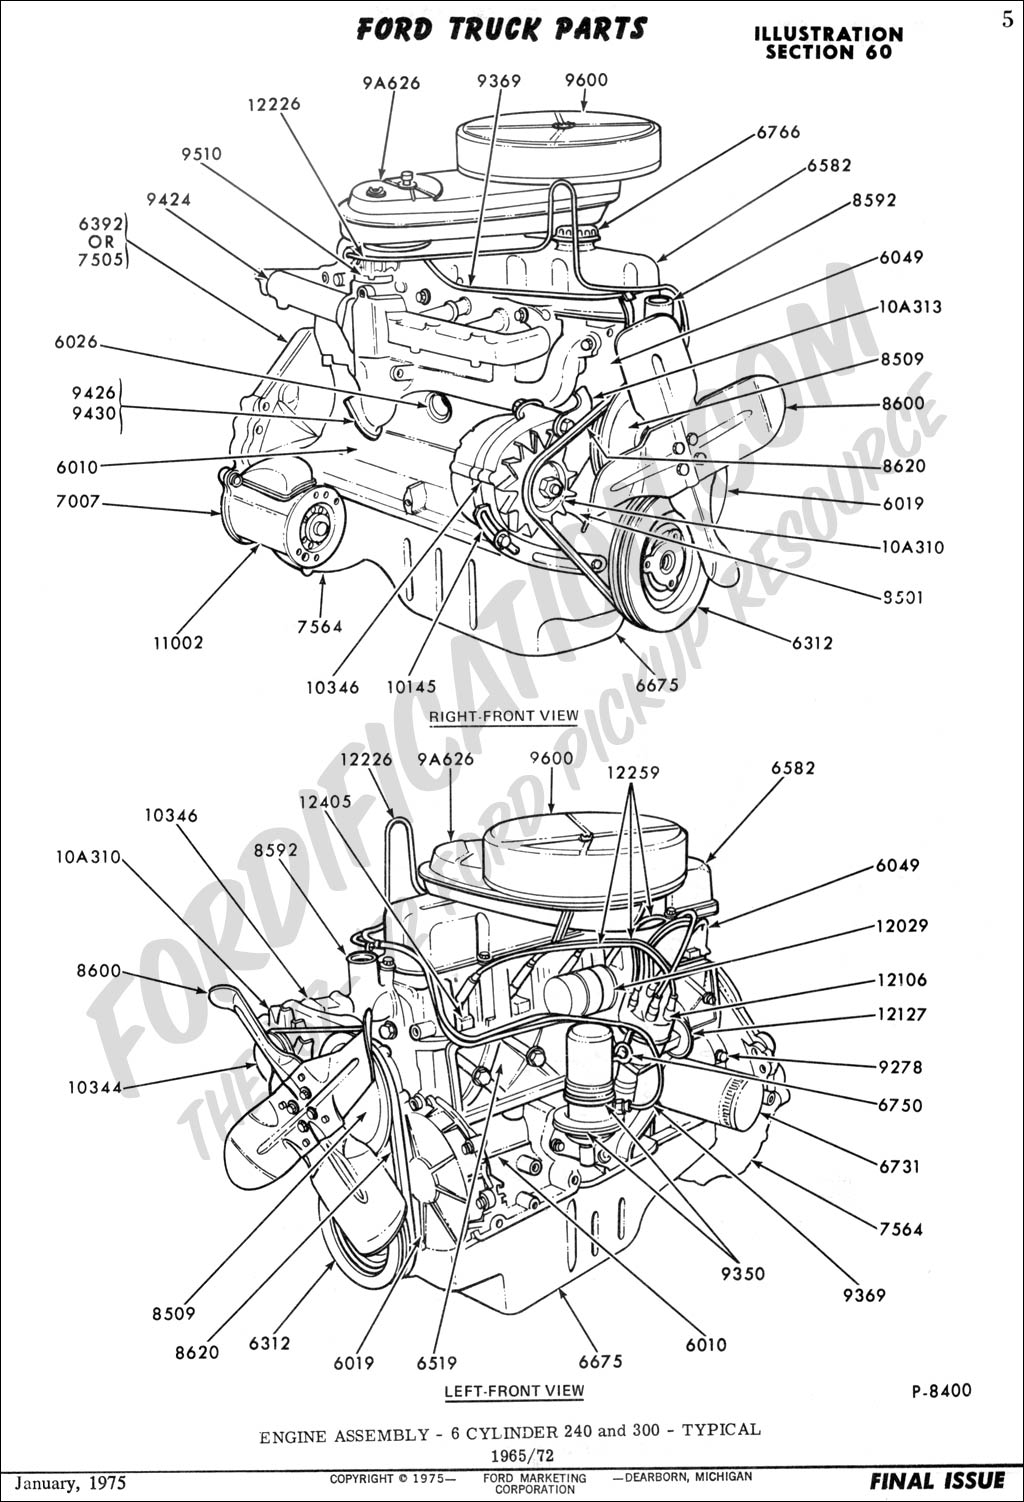 4r70w Wiring Diagram 98 Mustang Gt Transmission Diagrams Ford4r70wtransmissiondigitaltransmissionrangeswitchdtr Shifting in addition Duraspark Wiring Problems Ford Truck 1963 Ignition Diagram furthermore Wiring Diagram 94 Ford Bronco in addition 7de5o Gm Astro Question Routing Power Steering Lines as well 1986 Ford F150 Engine Wiring Diagram. on 1989 ford bronco diagrams